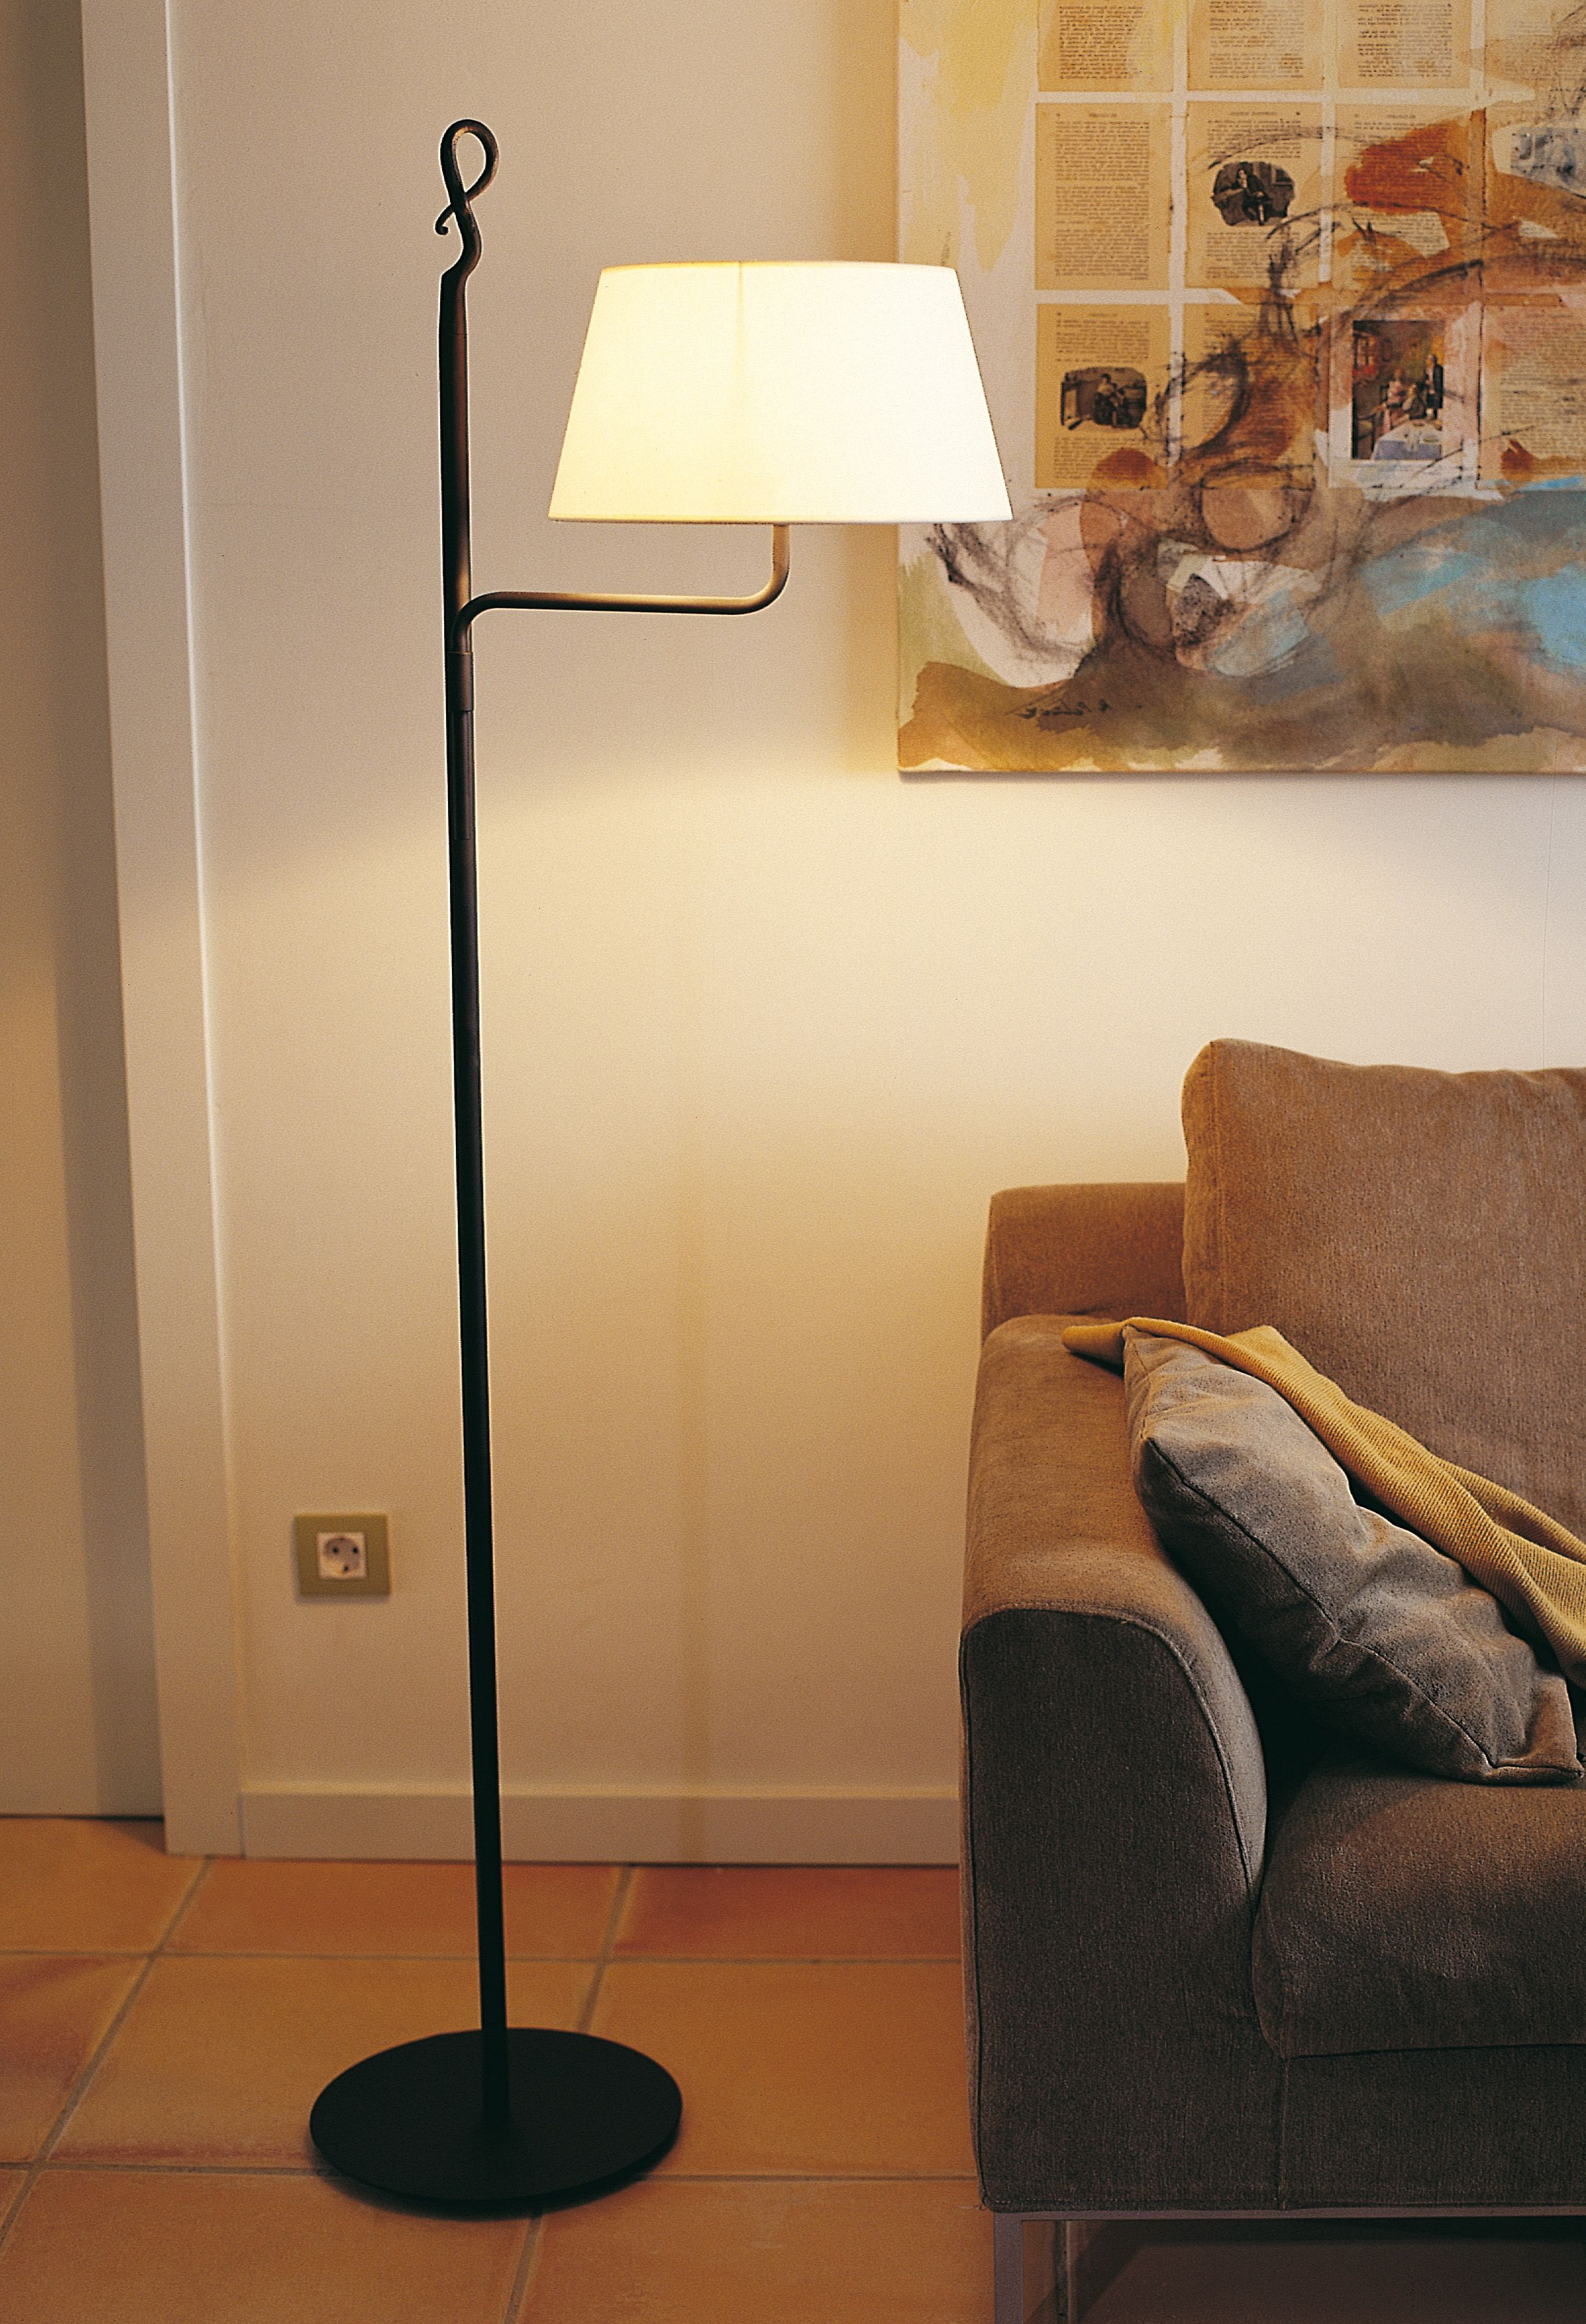 Name Ferrara Pie Movil Design Joana Bover 2002 Typology Floor Lamp Environment Indoor